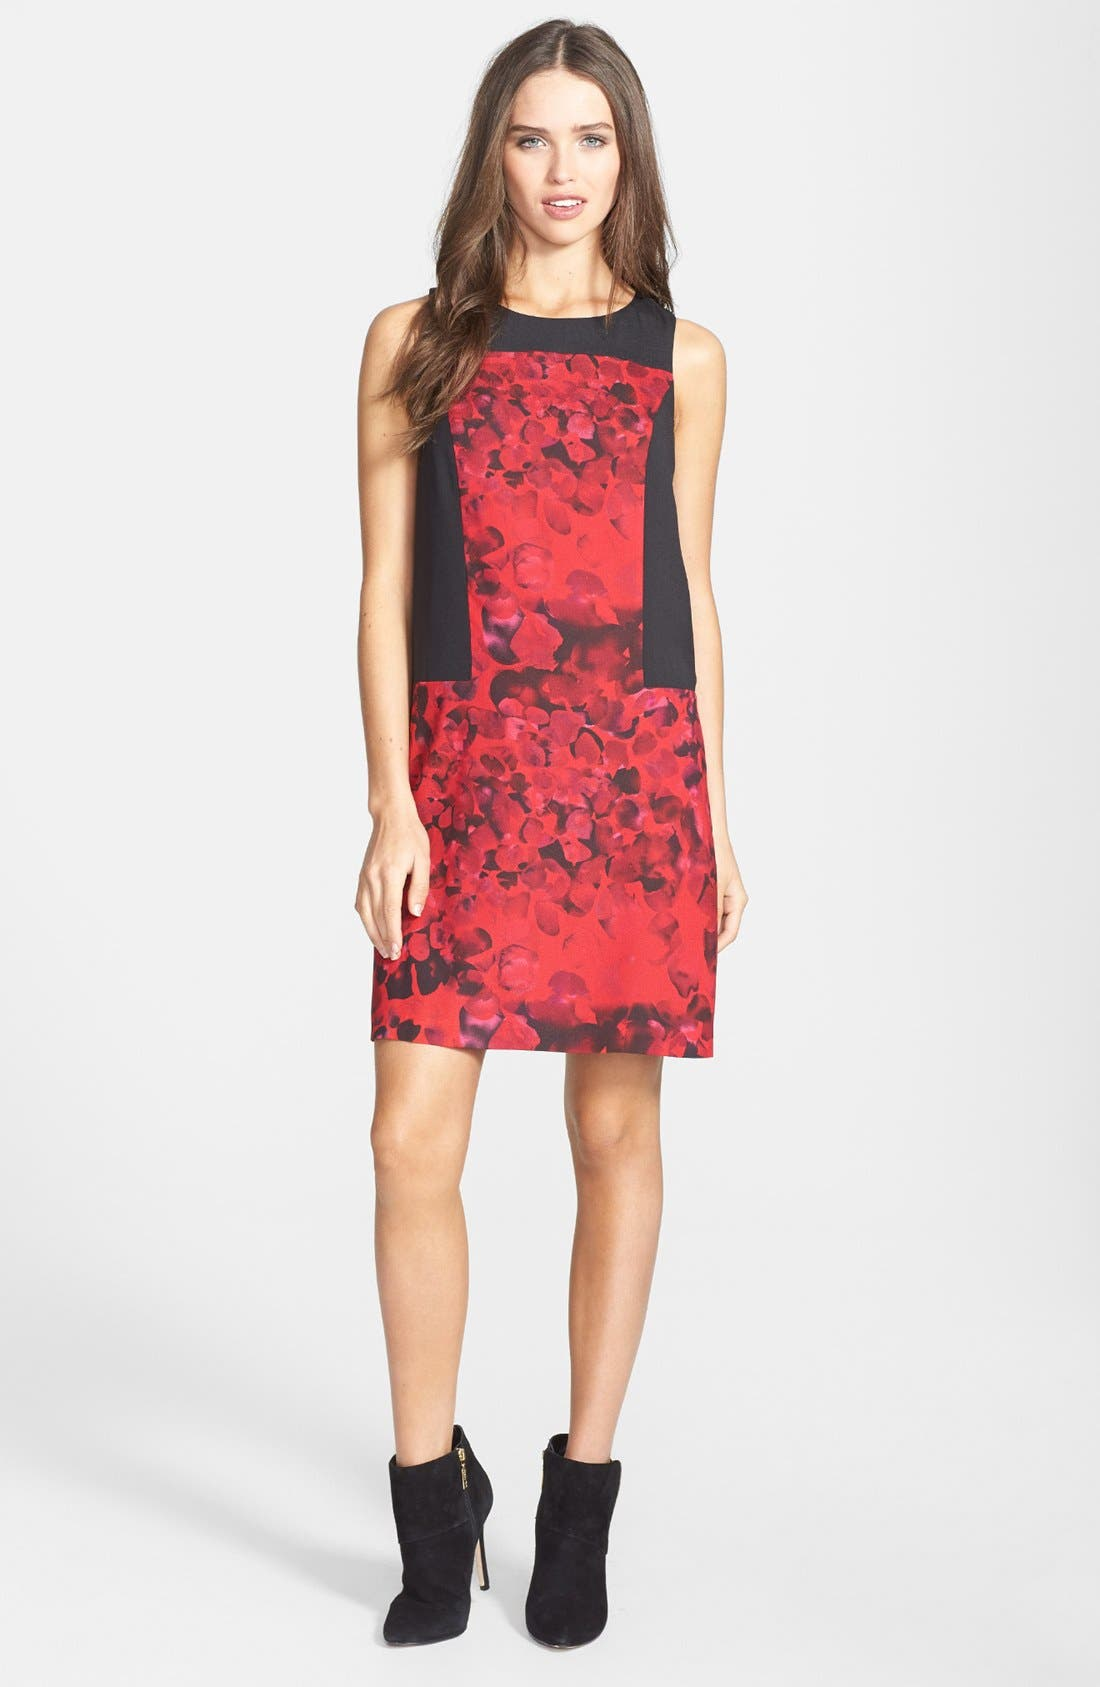 Main Image - kensie 'Petals' Crepe Shift Dress